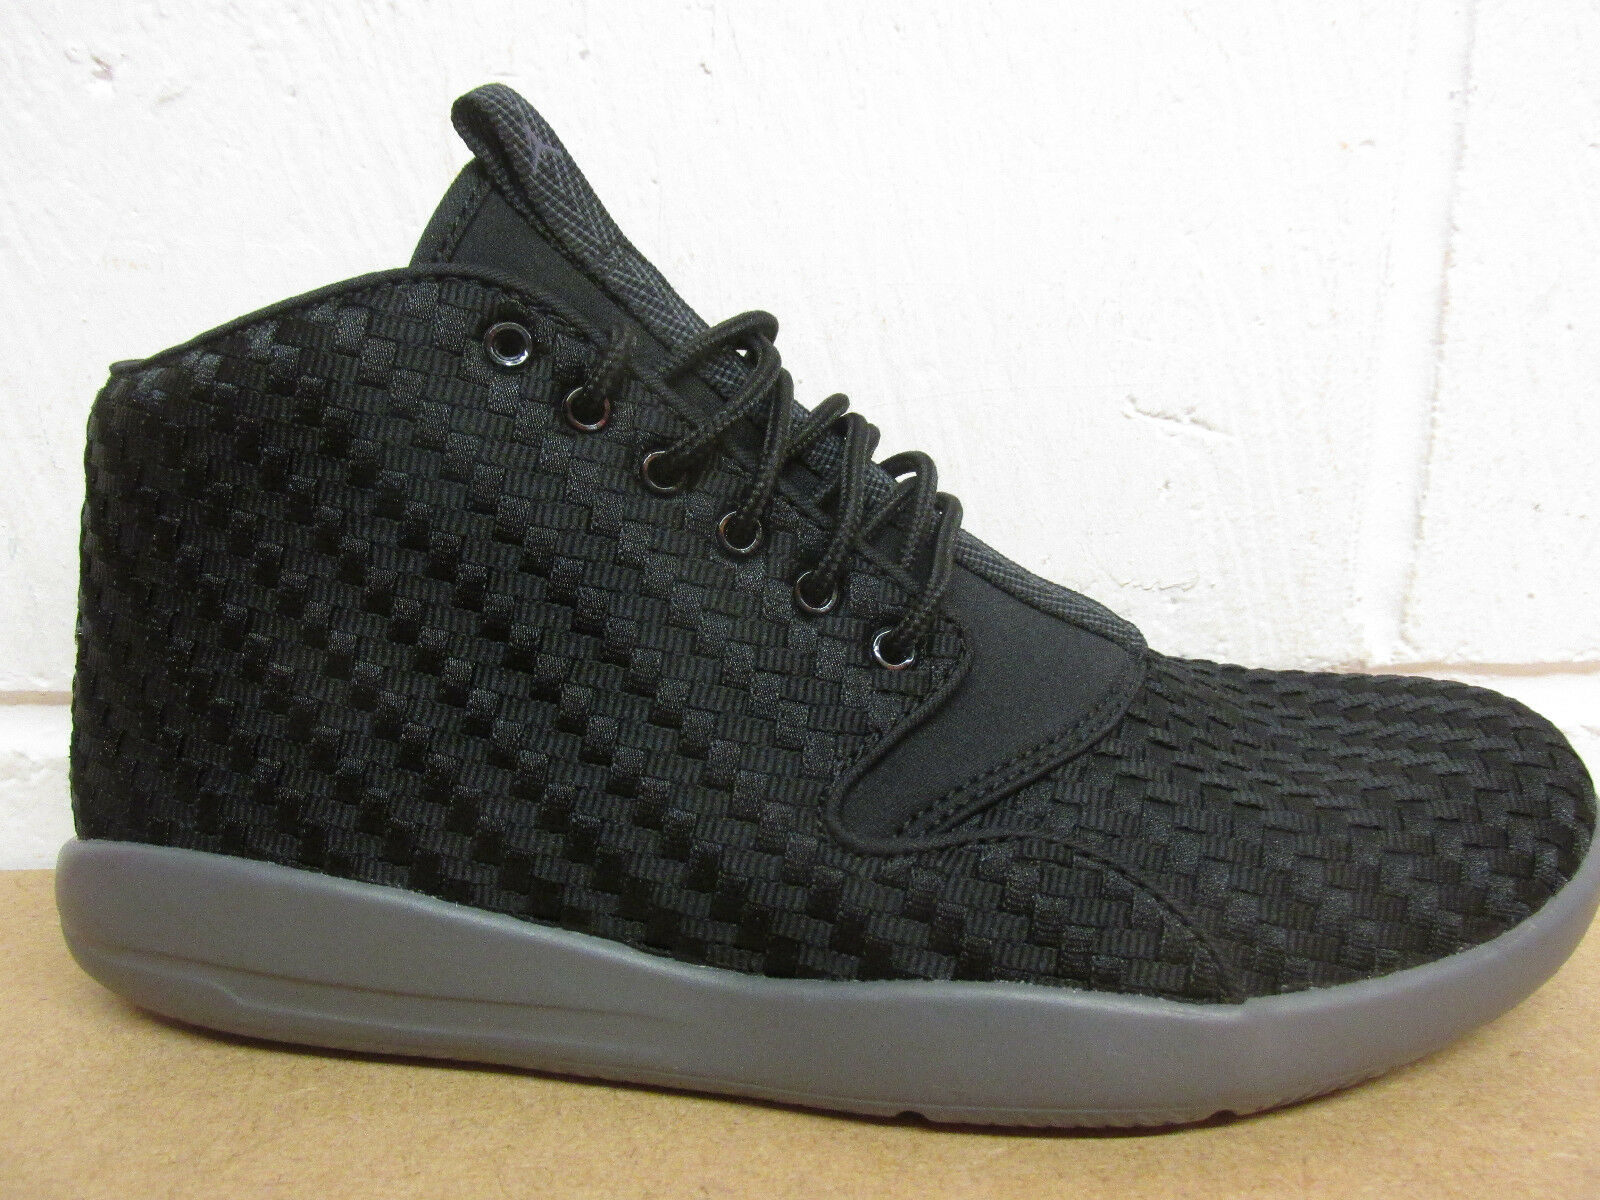 Nike Air Jordan Eclipse Chukka Mens Trainers 881453 001 Sneakers shoes